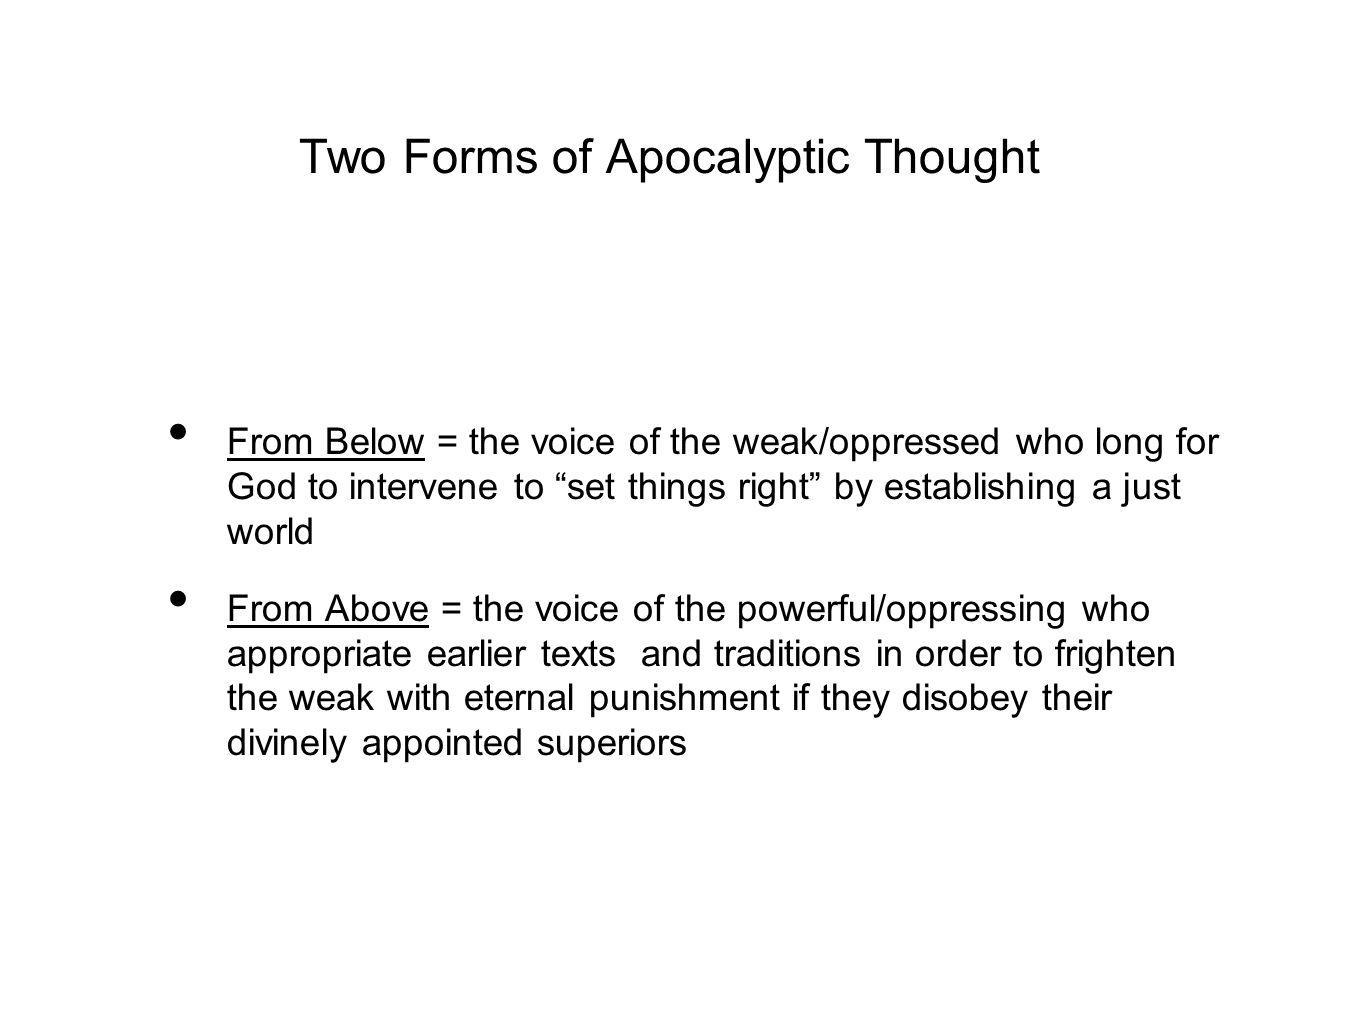 Two Forms of Apocalyptic Thought From Below = the voice of the weak/oppressed who long for God to intervene to set things right by establishing a just world From Above = the voice of the powerful/oppressing who appropriate earlier texts and traditions in order to frighten the weak with eternal punishment if they disobey their divinely appointed superiors